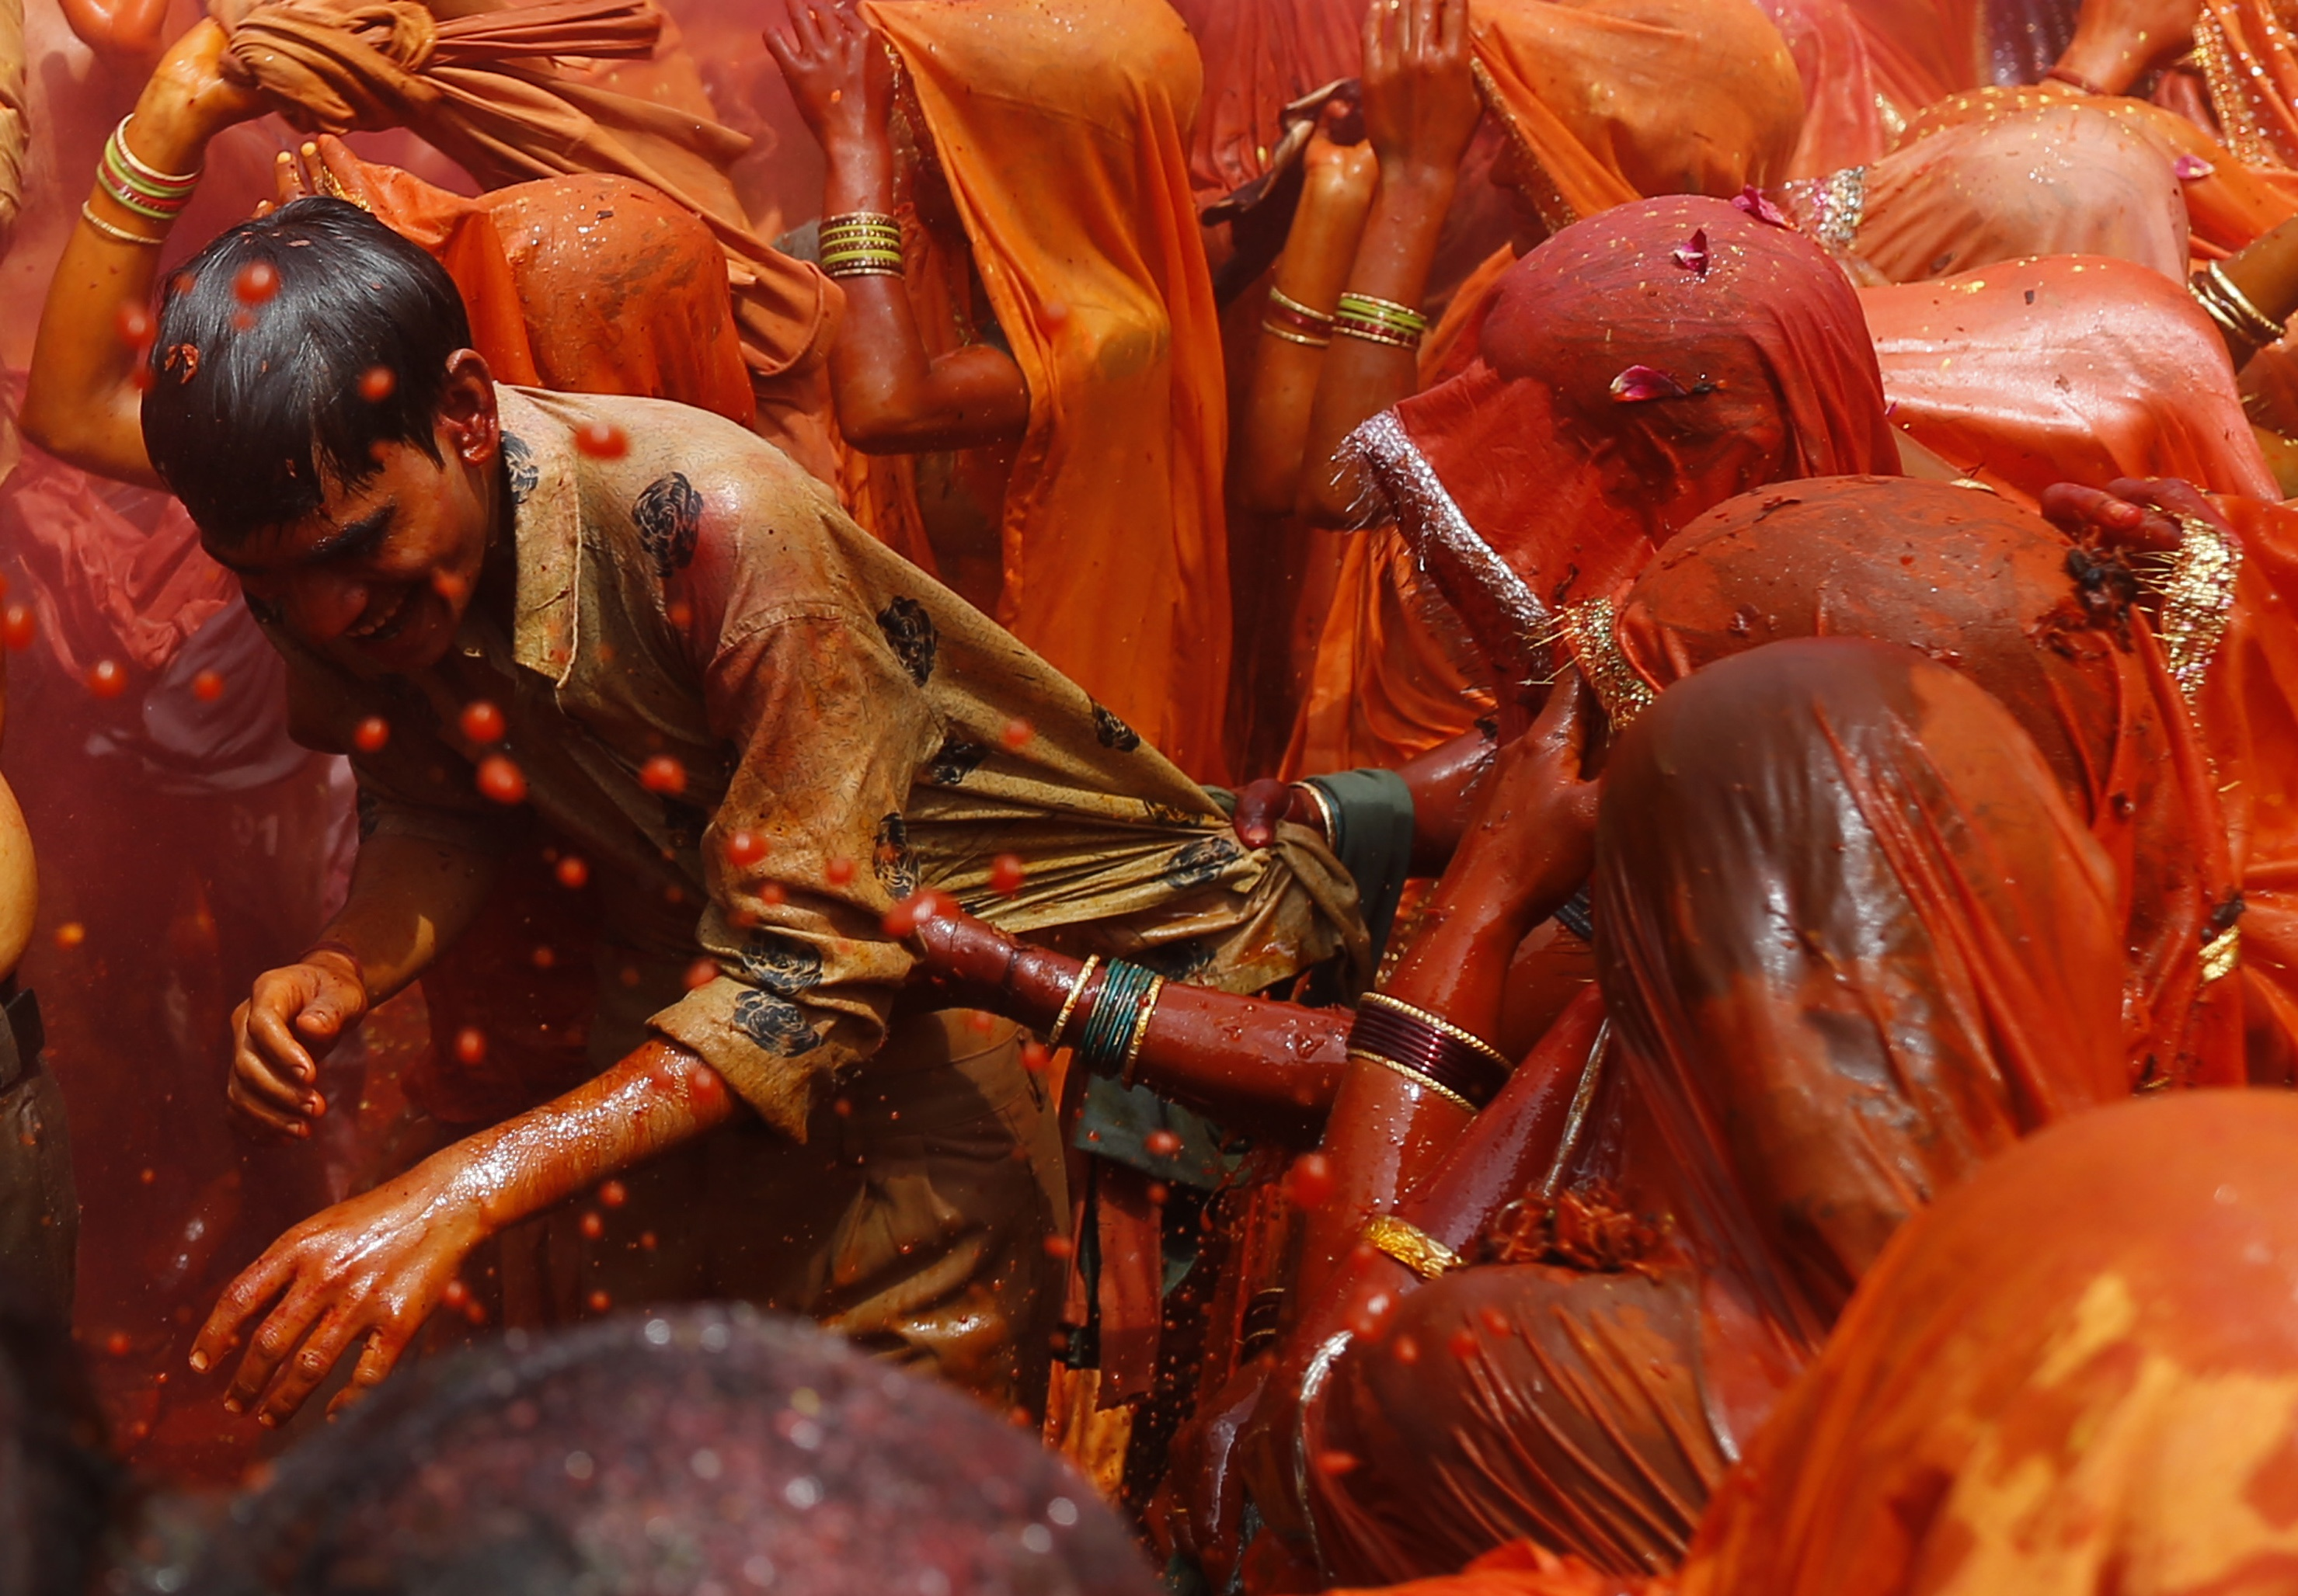 Holi in Mathura. Photo credit: Ahmad Masood/Reuters